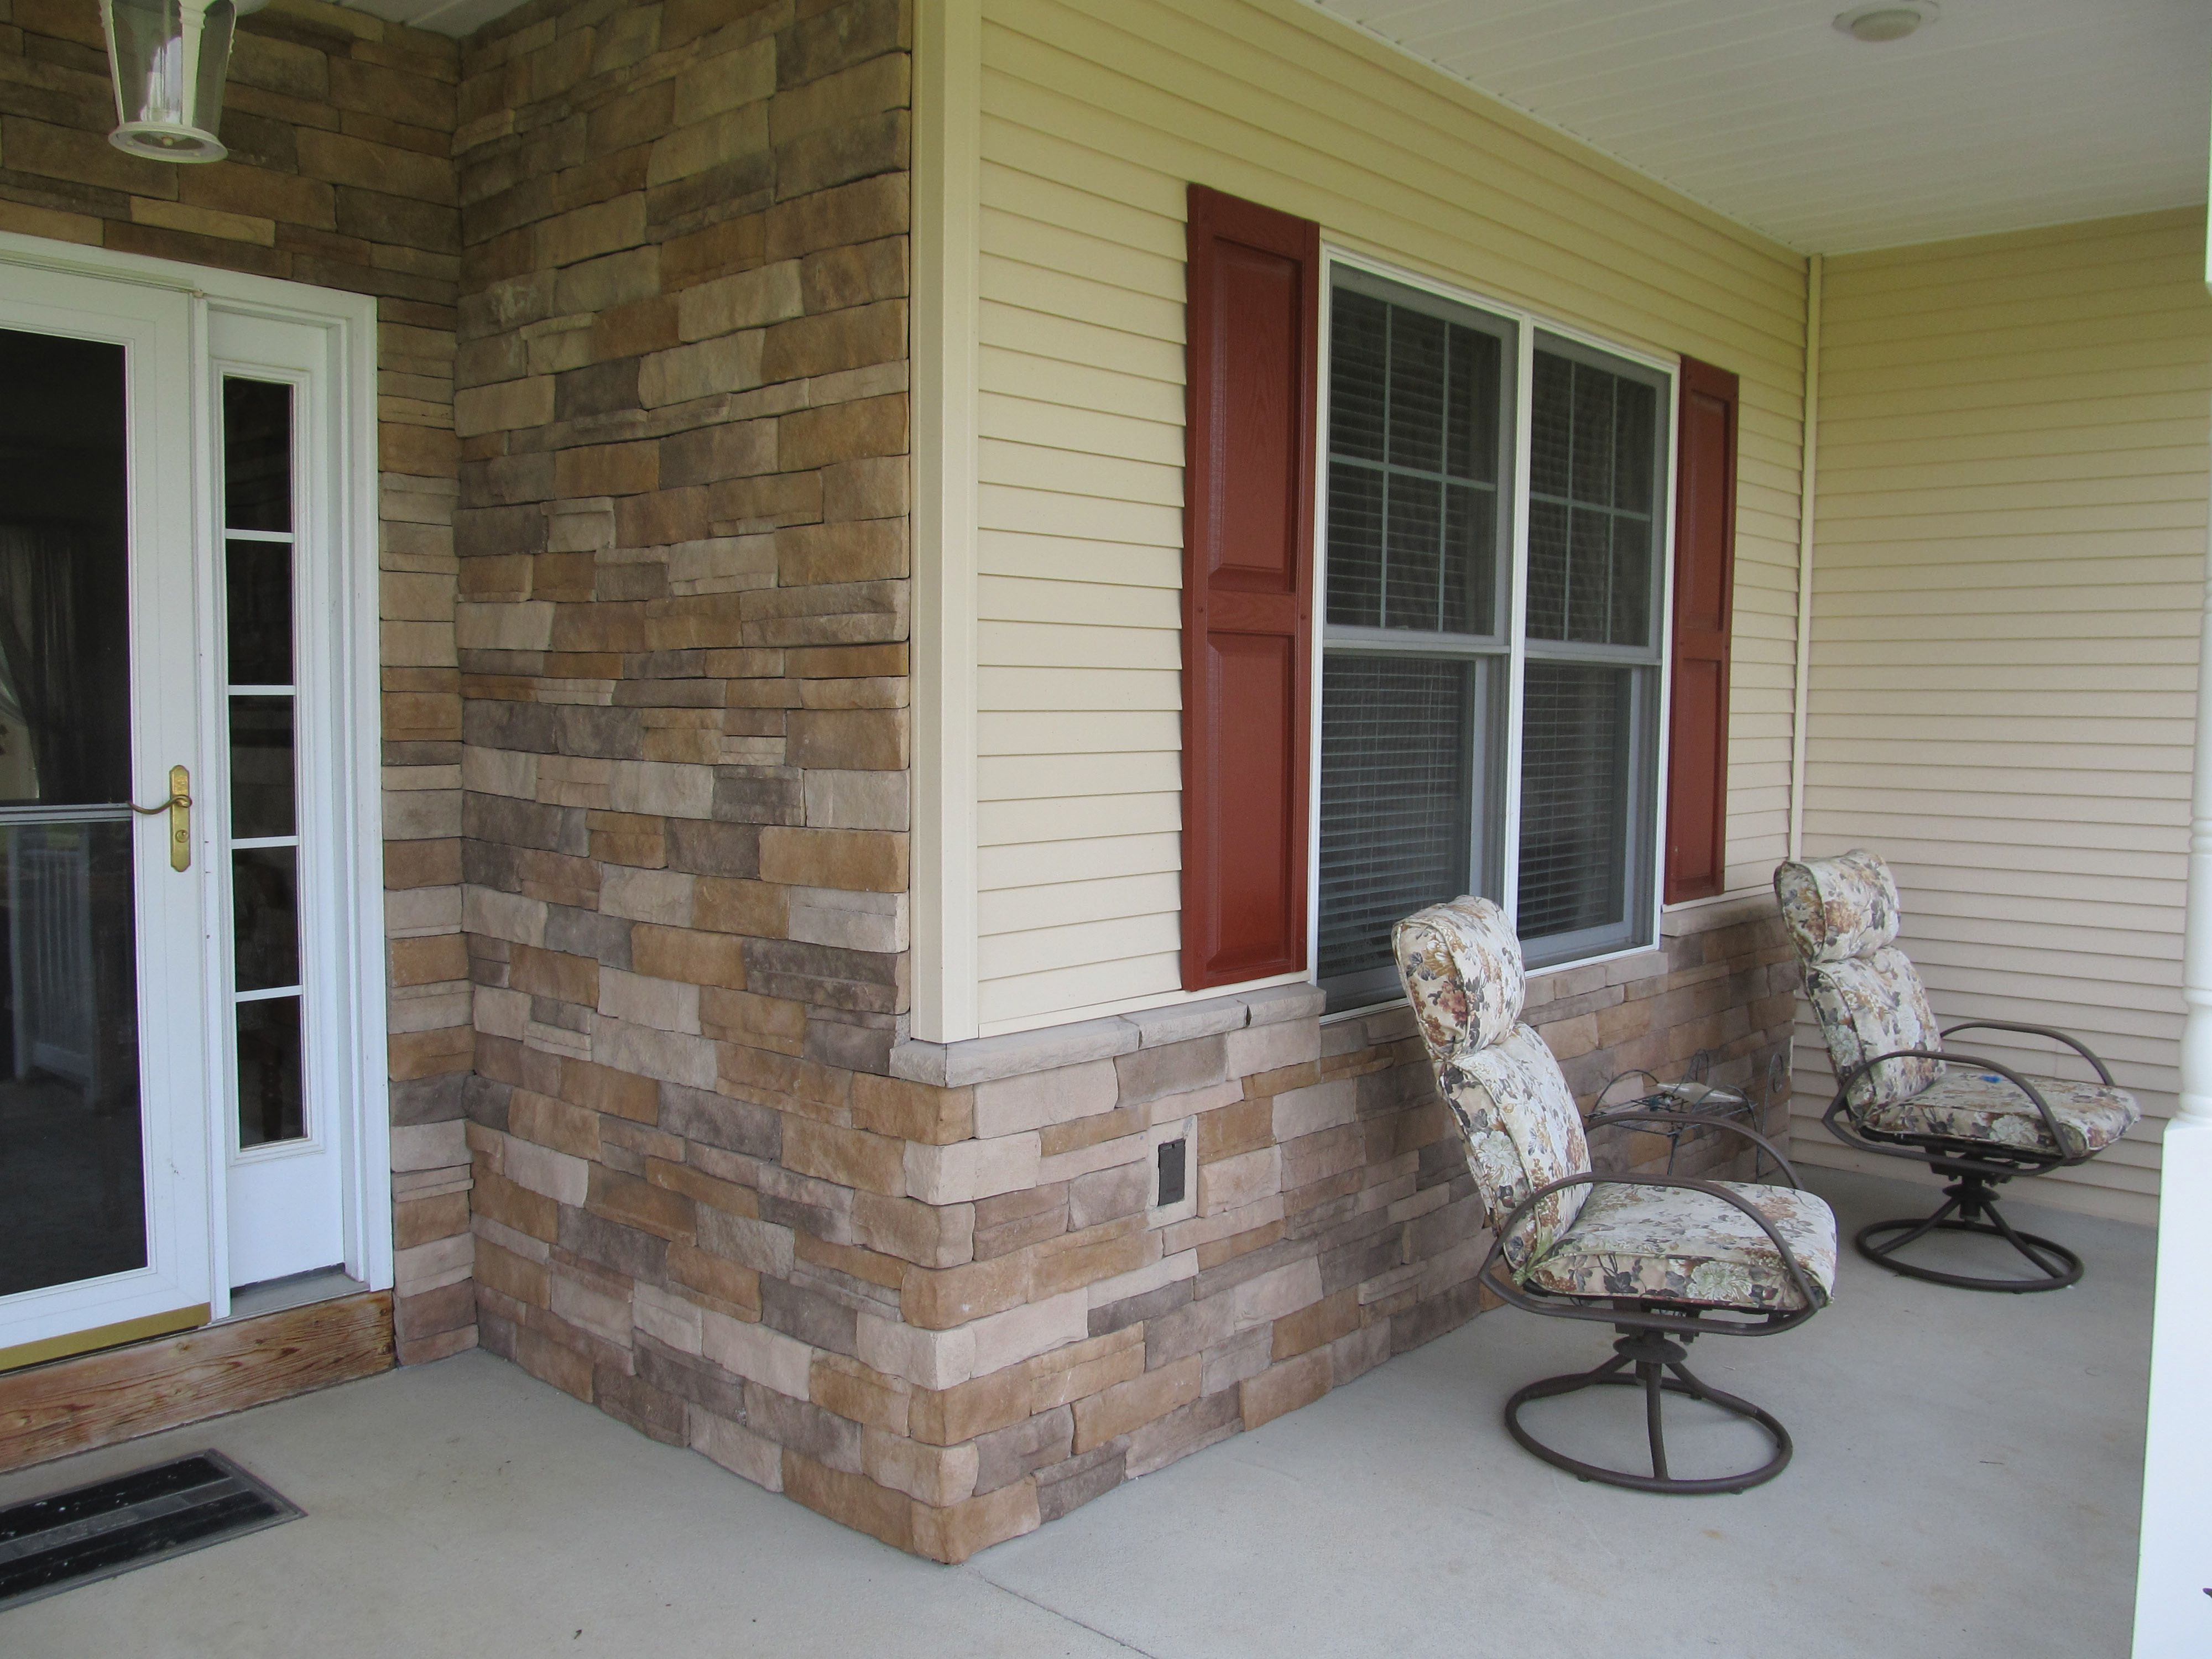 Turn a boring exterior into an eyecatching stone wall with